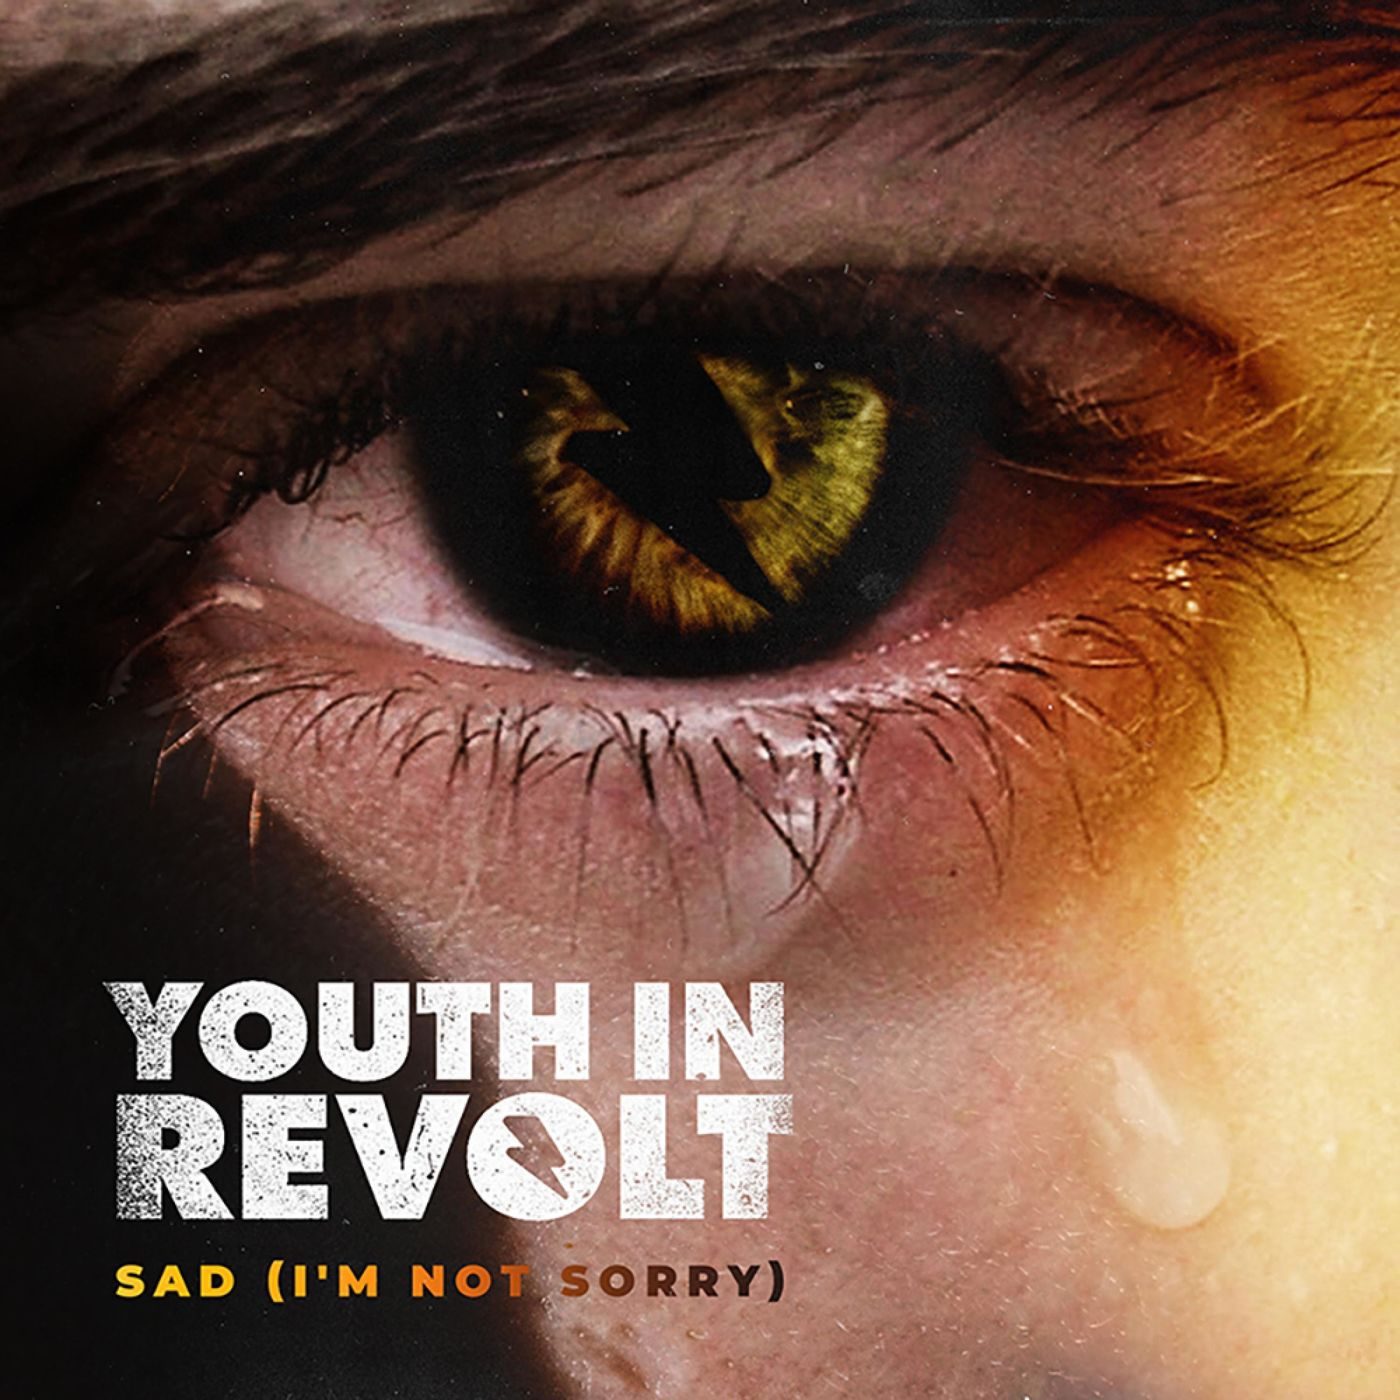 Youth in Revolt - Sad (I'm Not Sorry) [single] (2020)